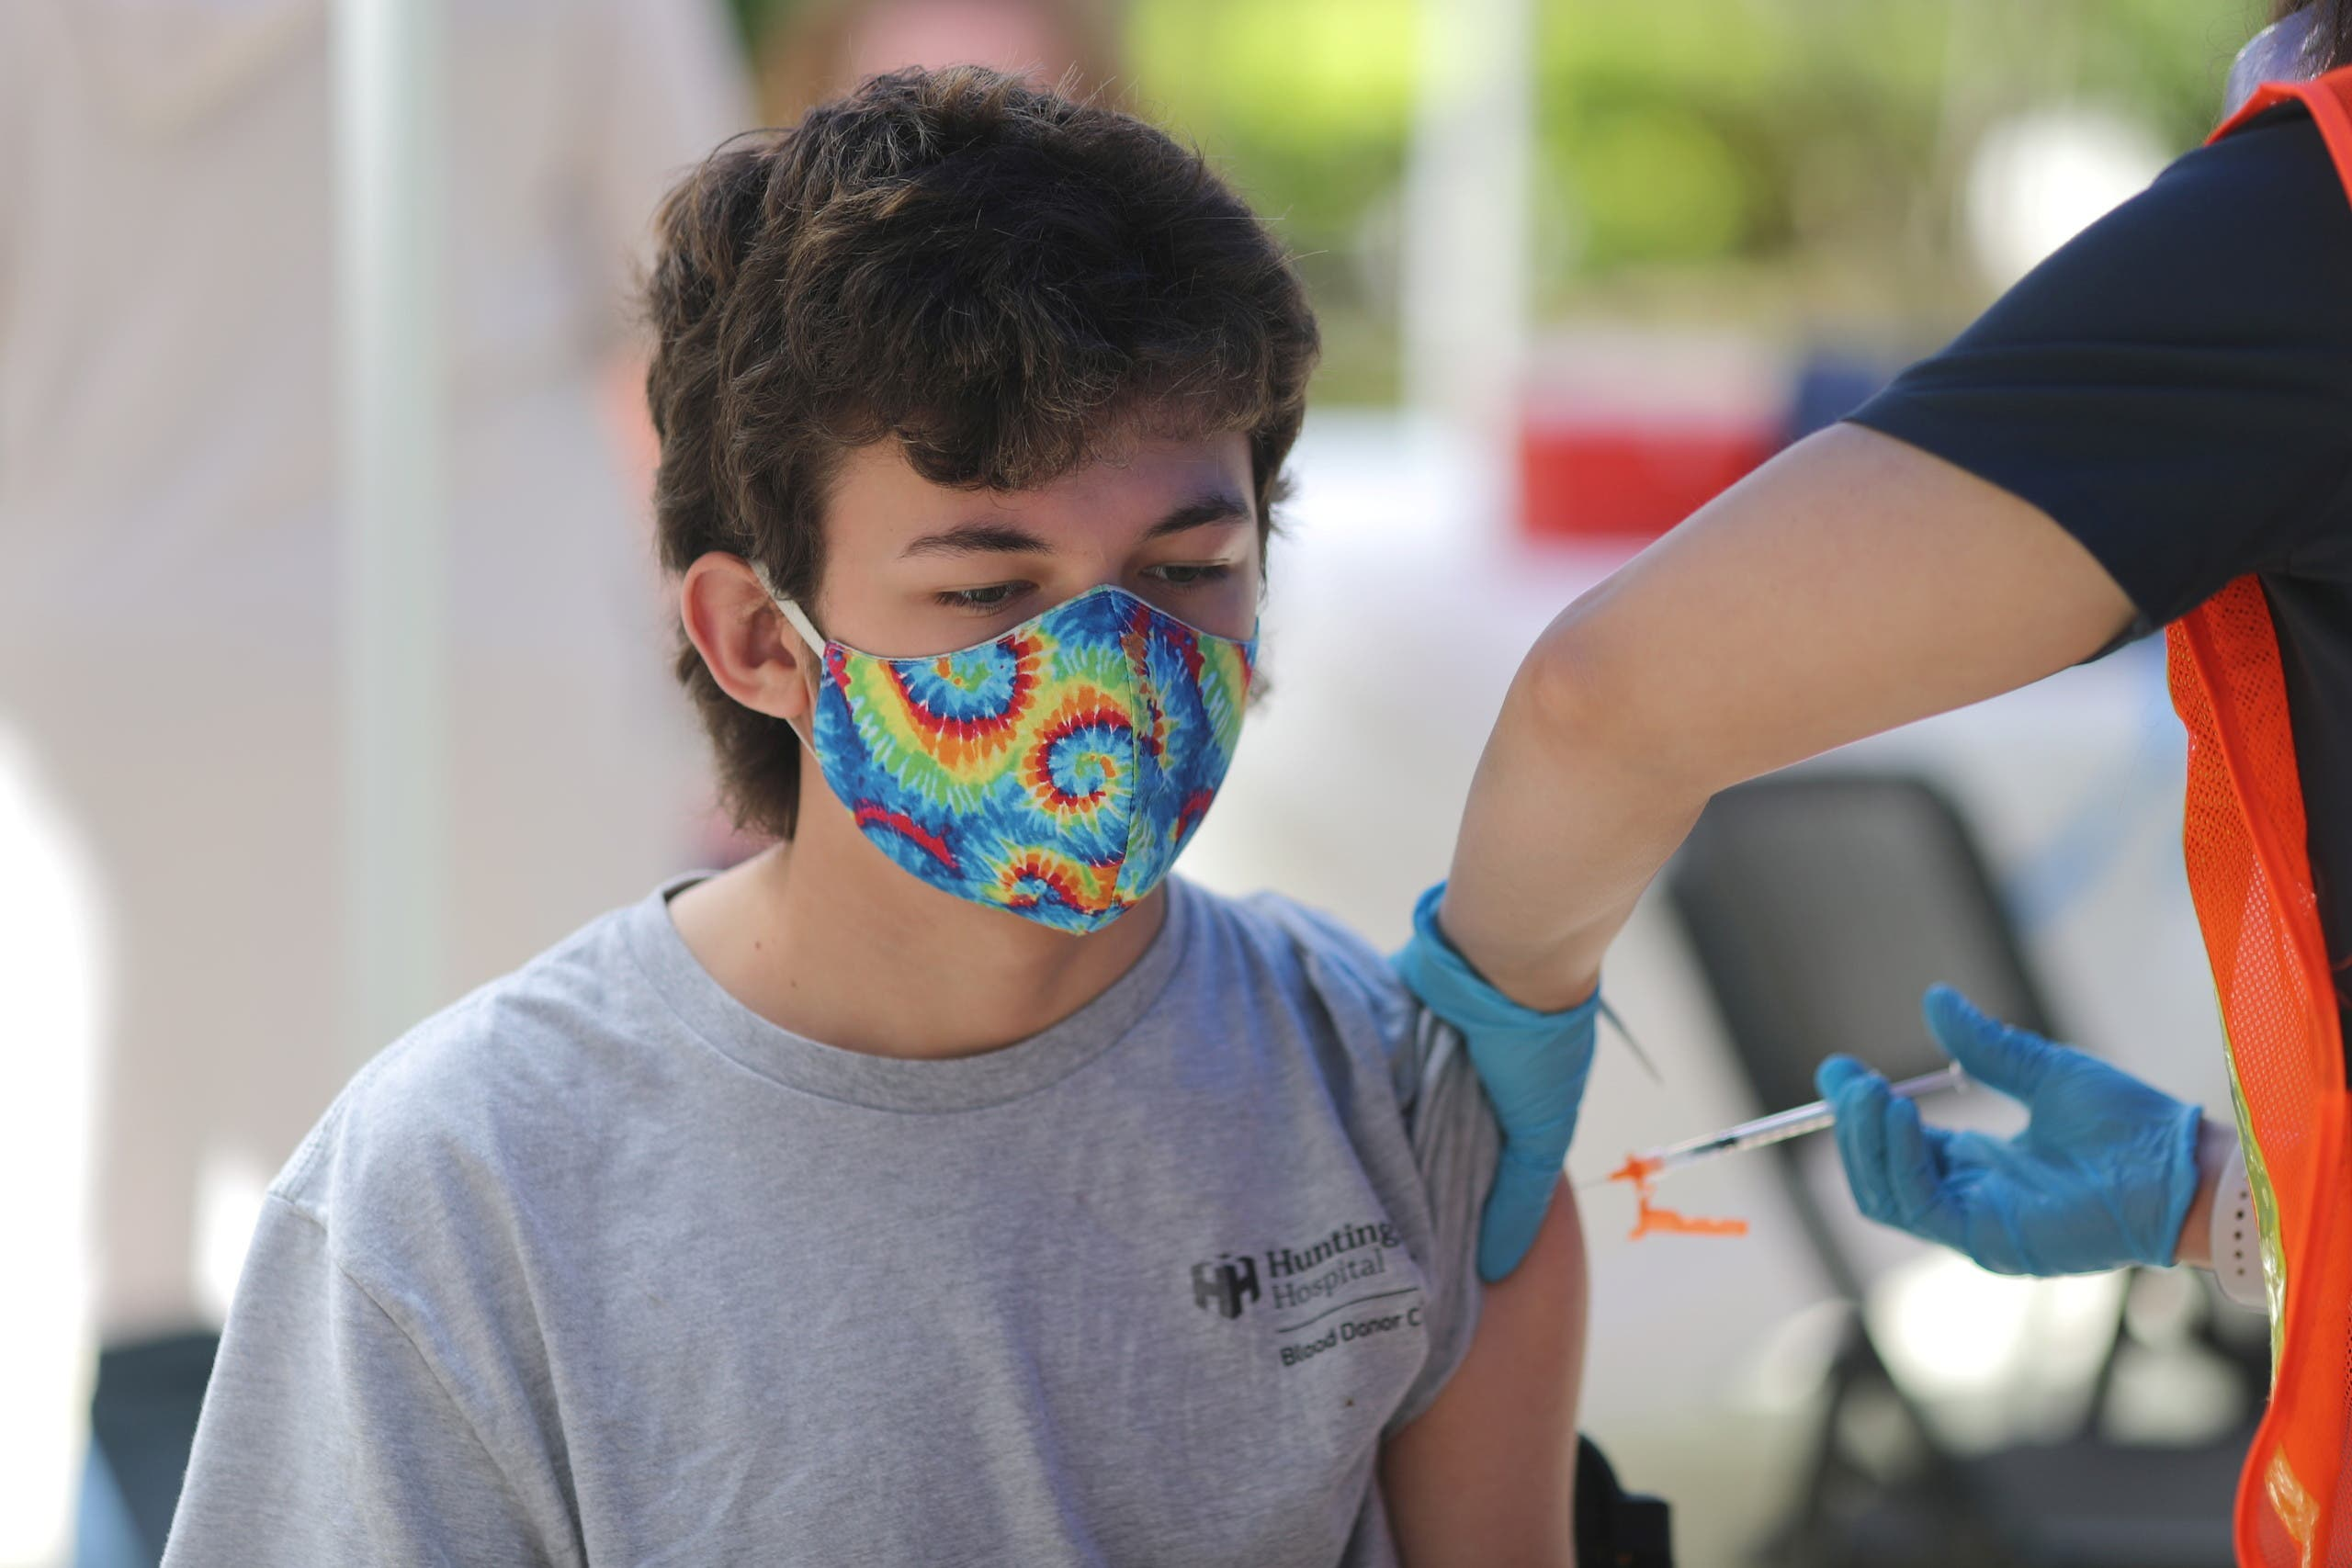 Finley Martin, 14, receives a coronavirus disease (COVID-19) vaccination at a vaccine clinic for newly eligible 12 to 15-year-olds in Pasadena, California, US, May 14, 2021. (Reuters)